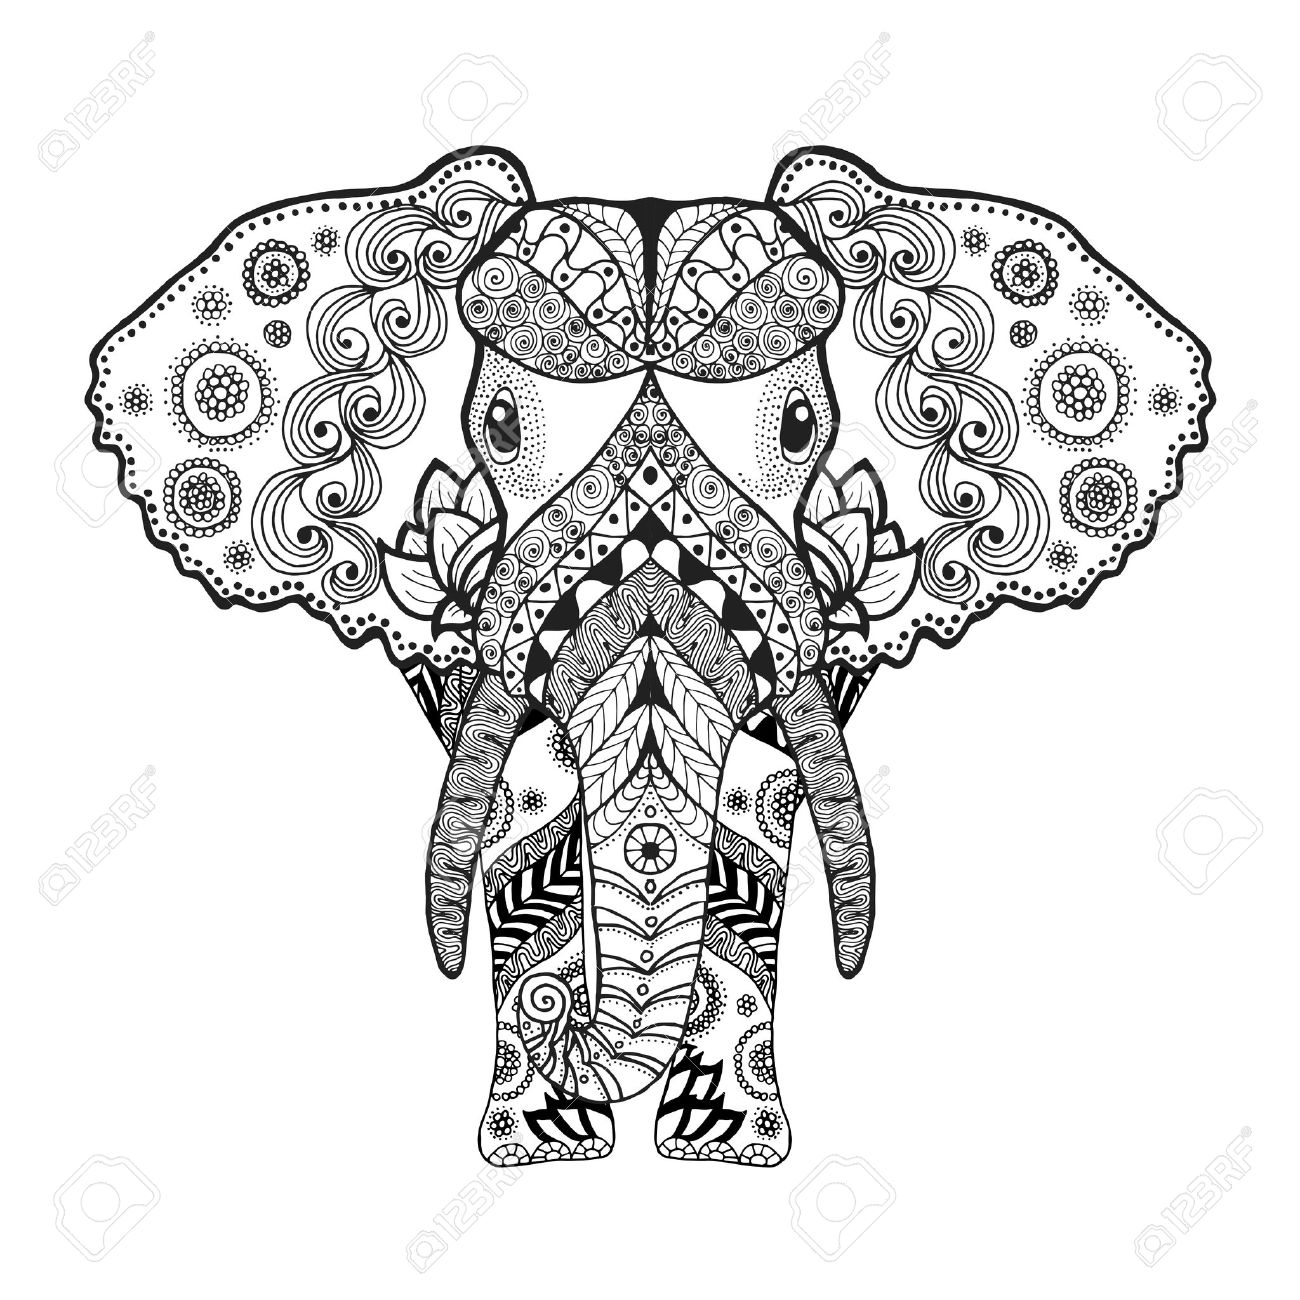 Adult Antistress Coloring Page. Black White Hand Drawn Doodle ...